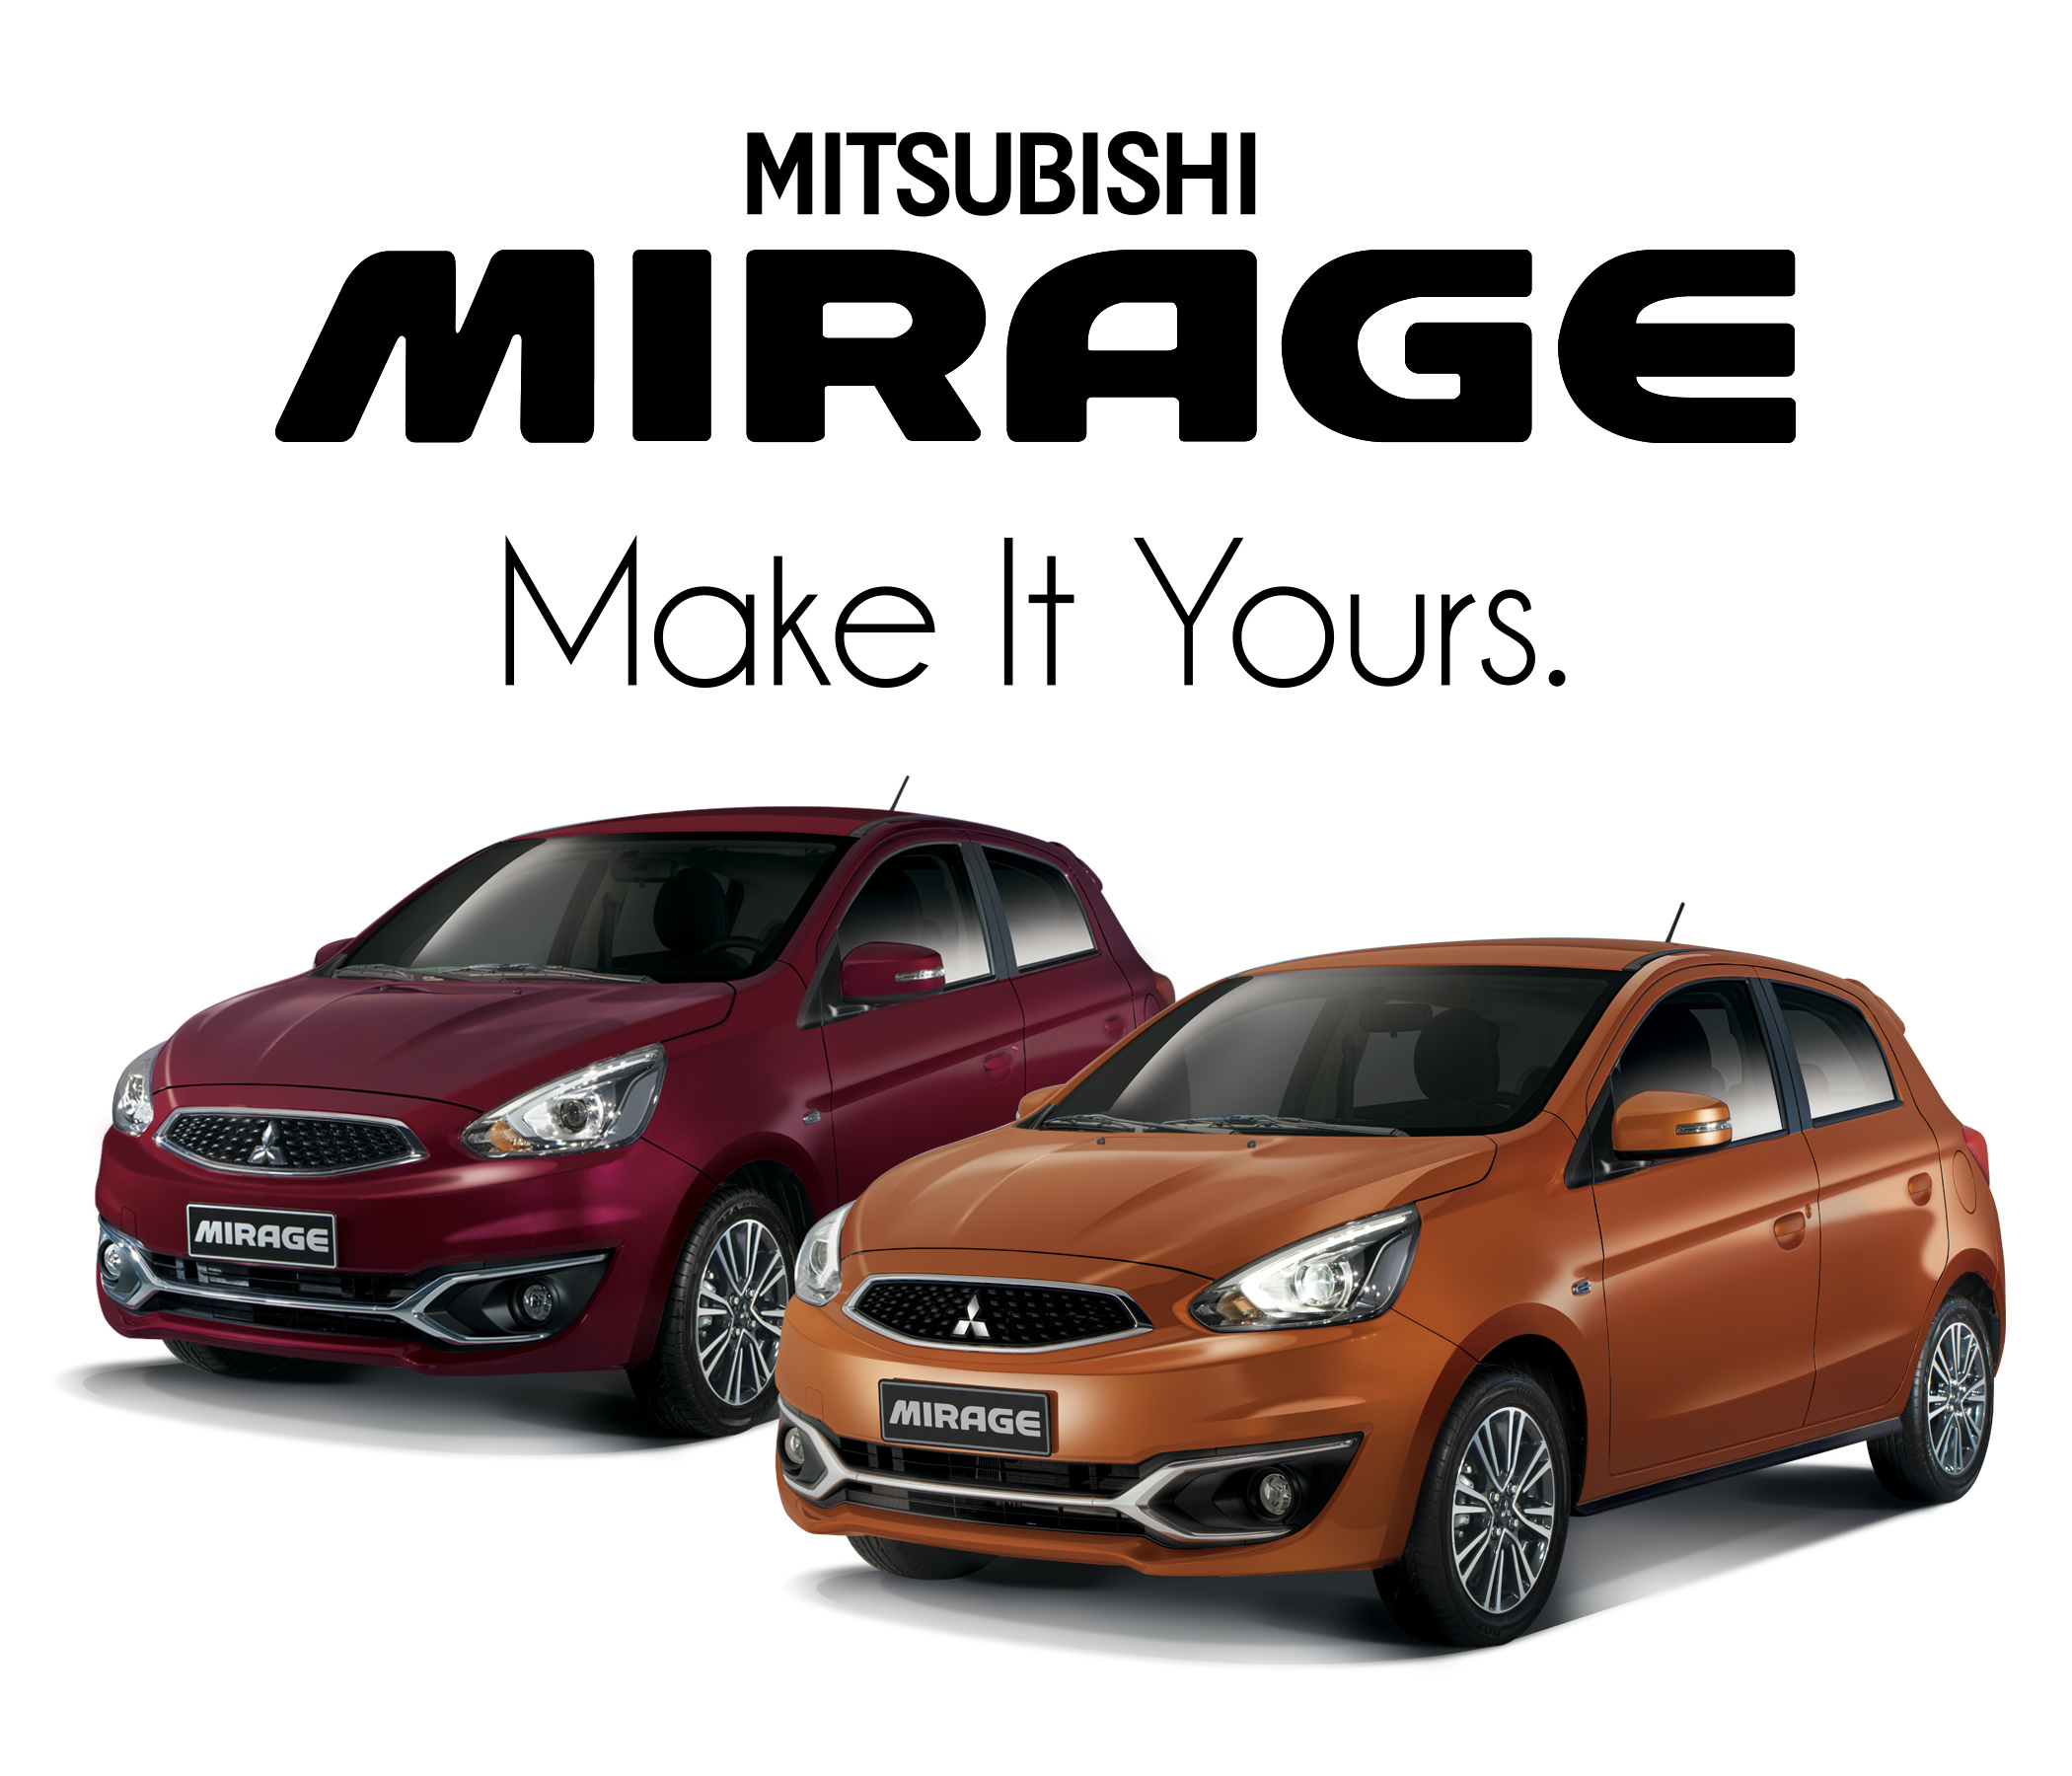 mitsubishi-motors-philippines-unveils-the-2016-mirage